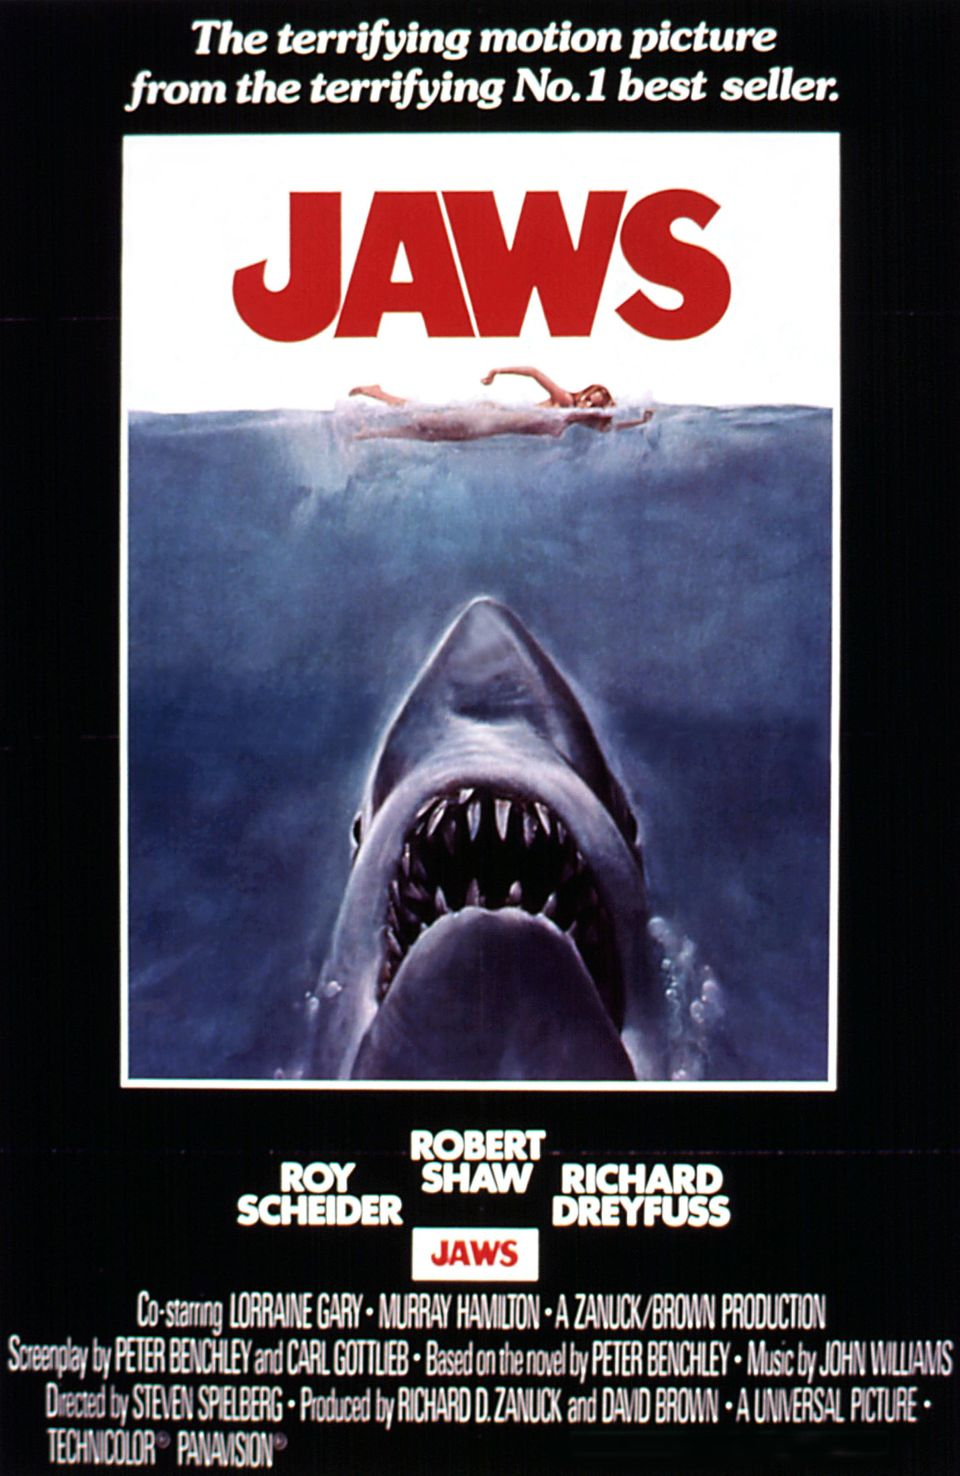 """Jaws"" premiered on June 20, 1975."